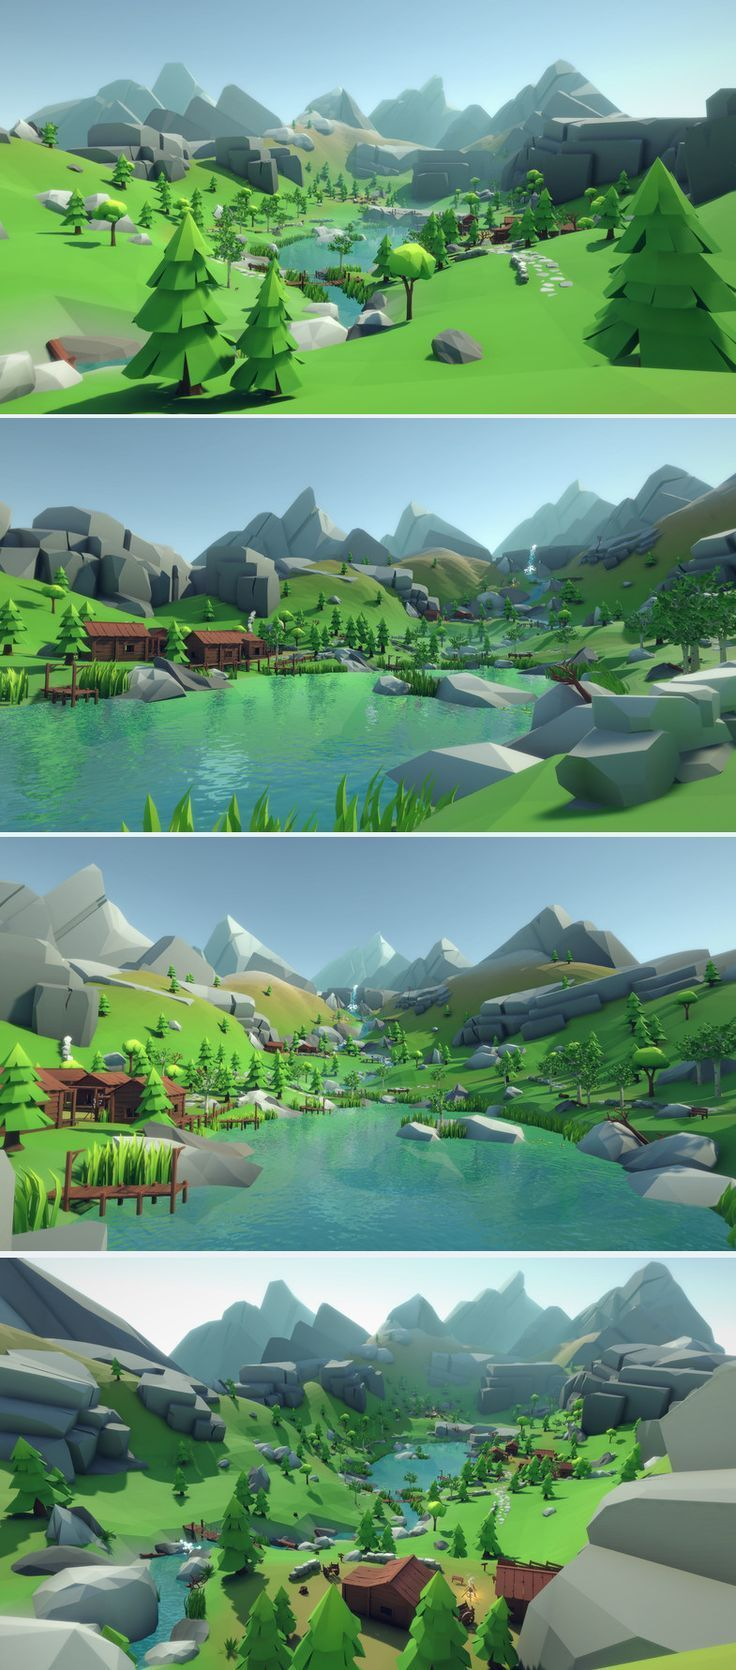 Lowpoly Style Alpine Woodlands Environment Build your own Mountain or Woodland levels and landscapes with thi… | Game level design, Environment design, Low poly art